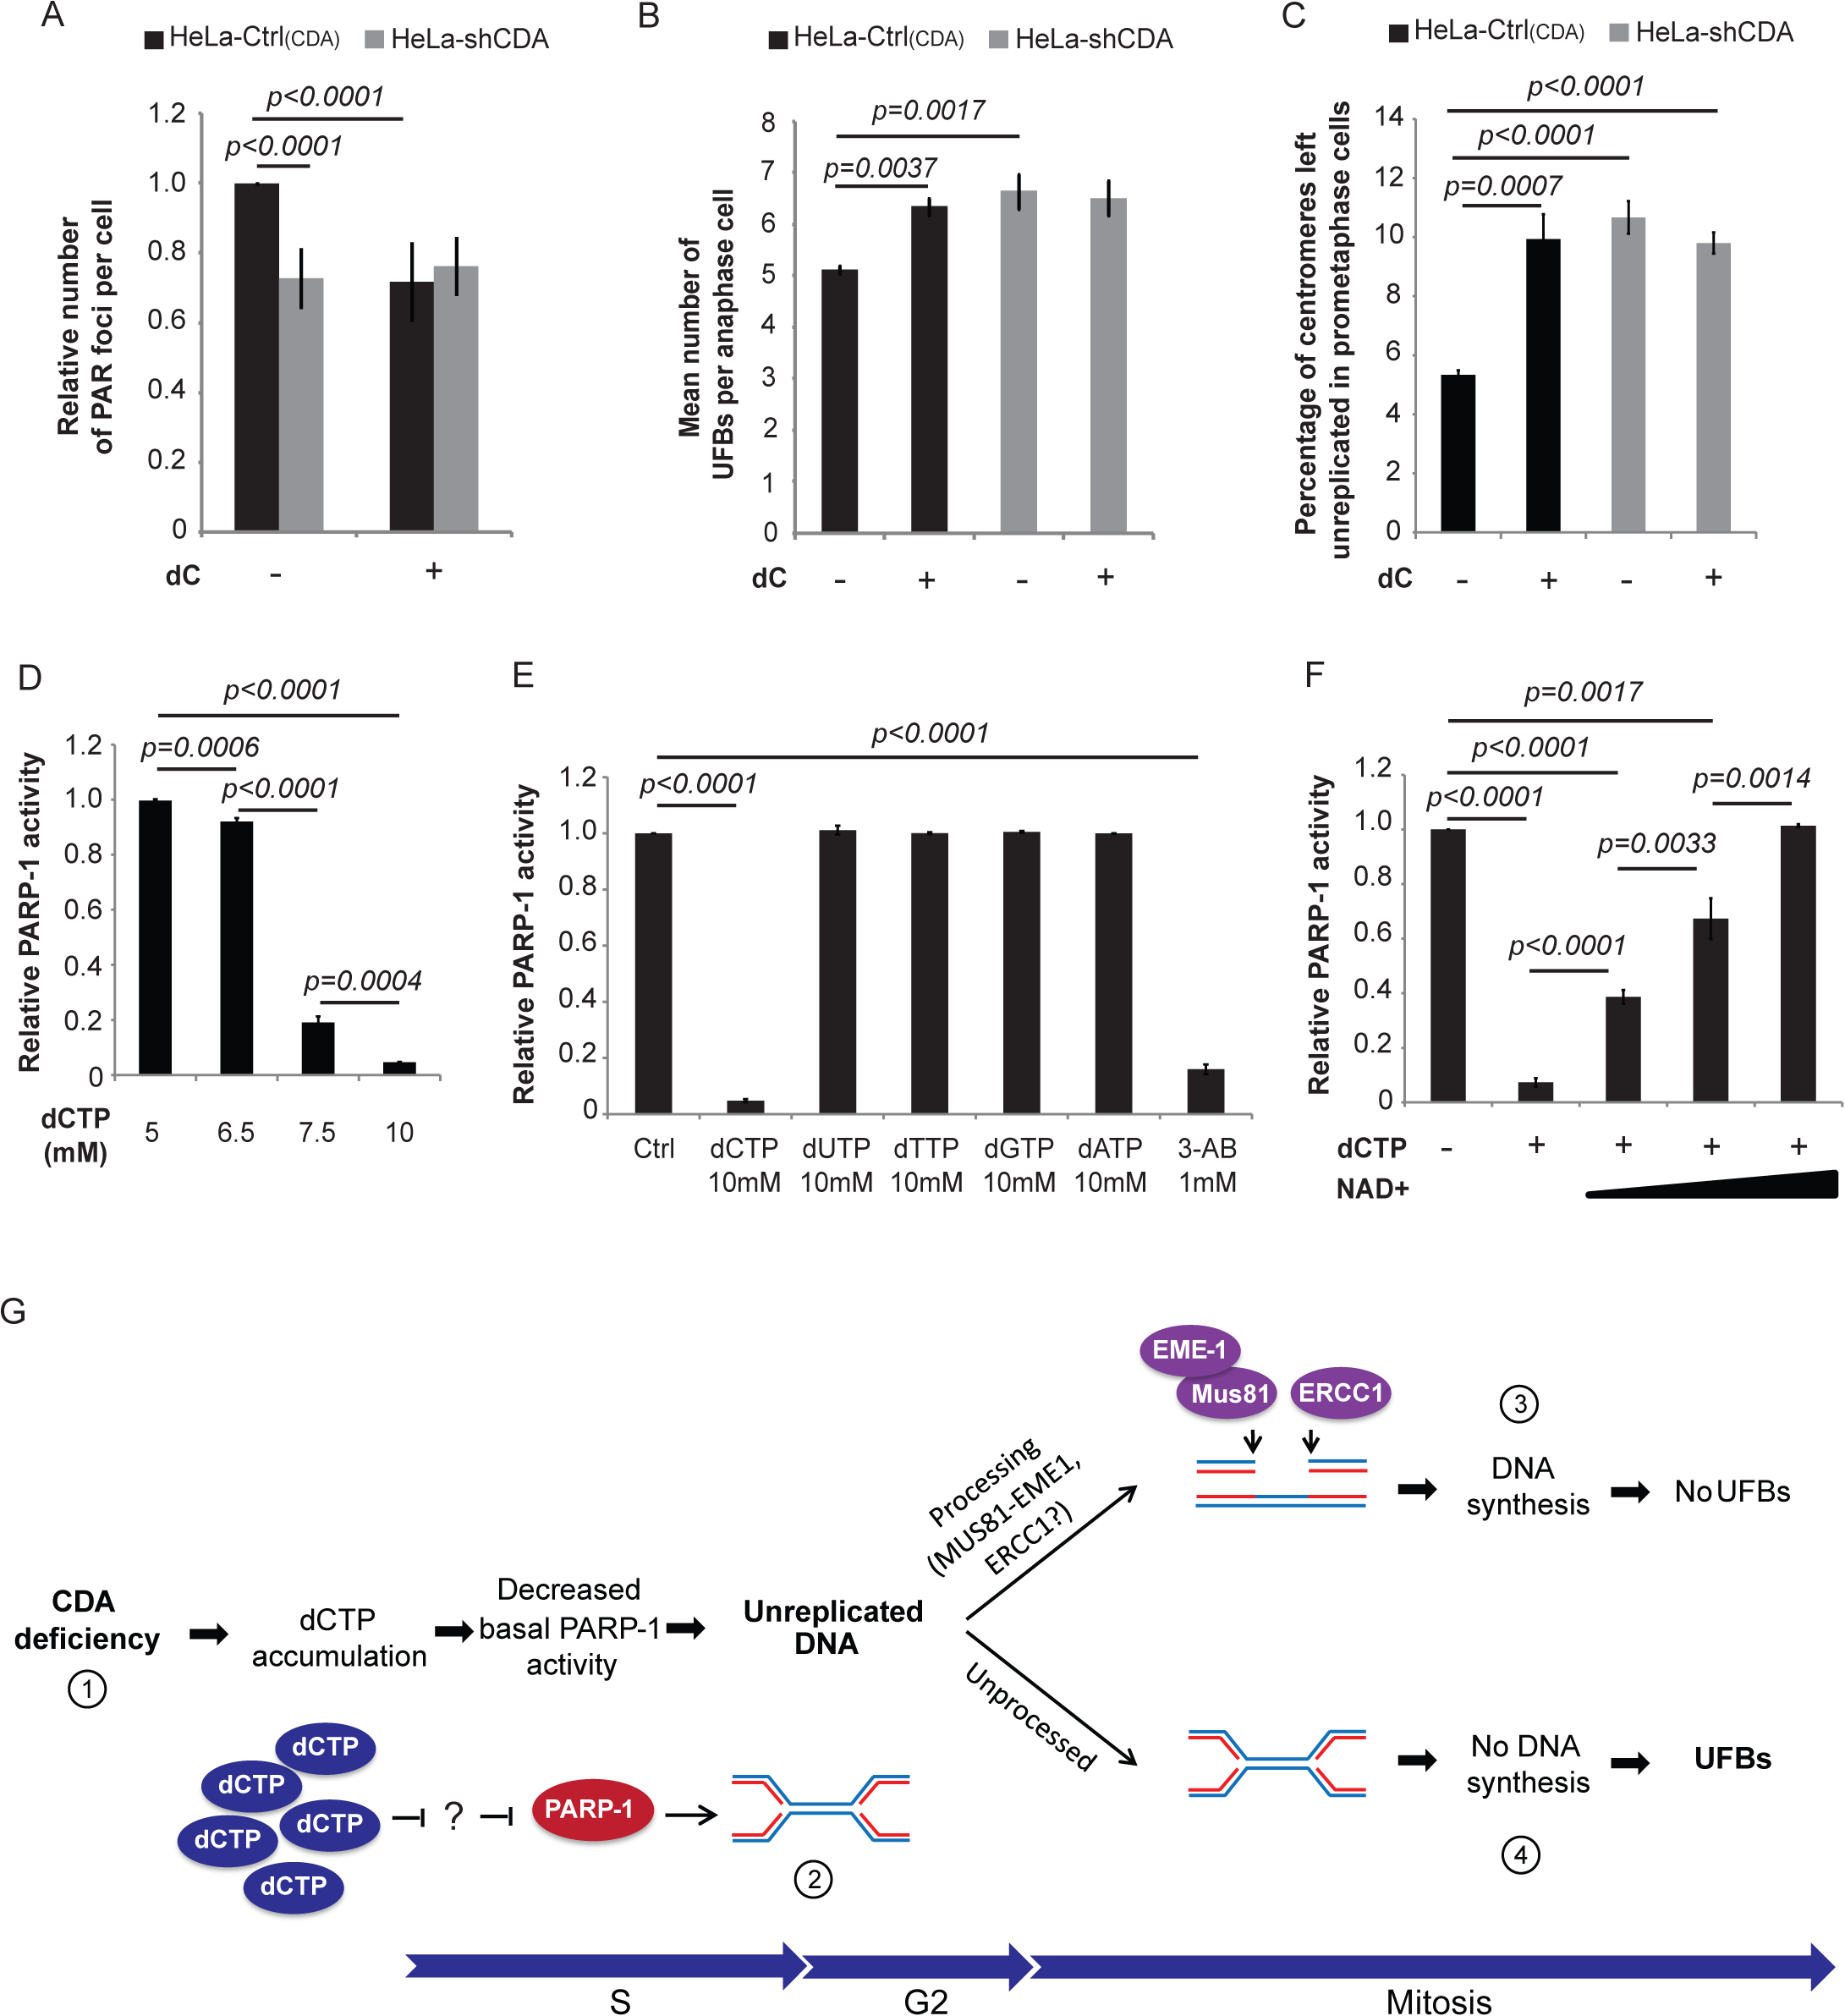 CDA deficiency leads to excess dCTP, inhibiting PARP-1 activity and leading to UFB formation.